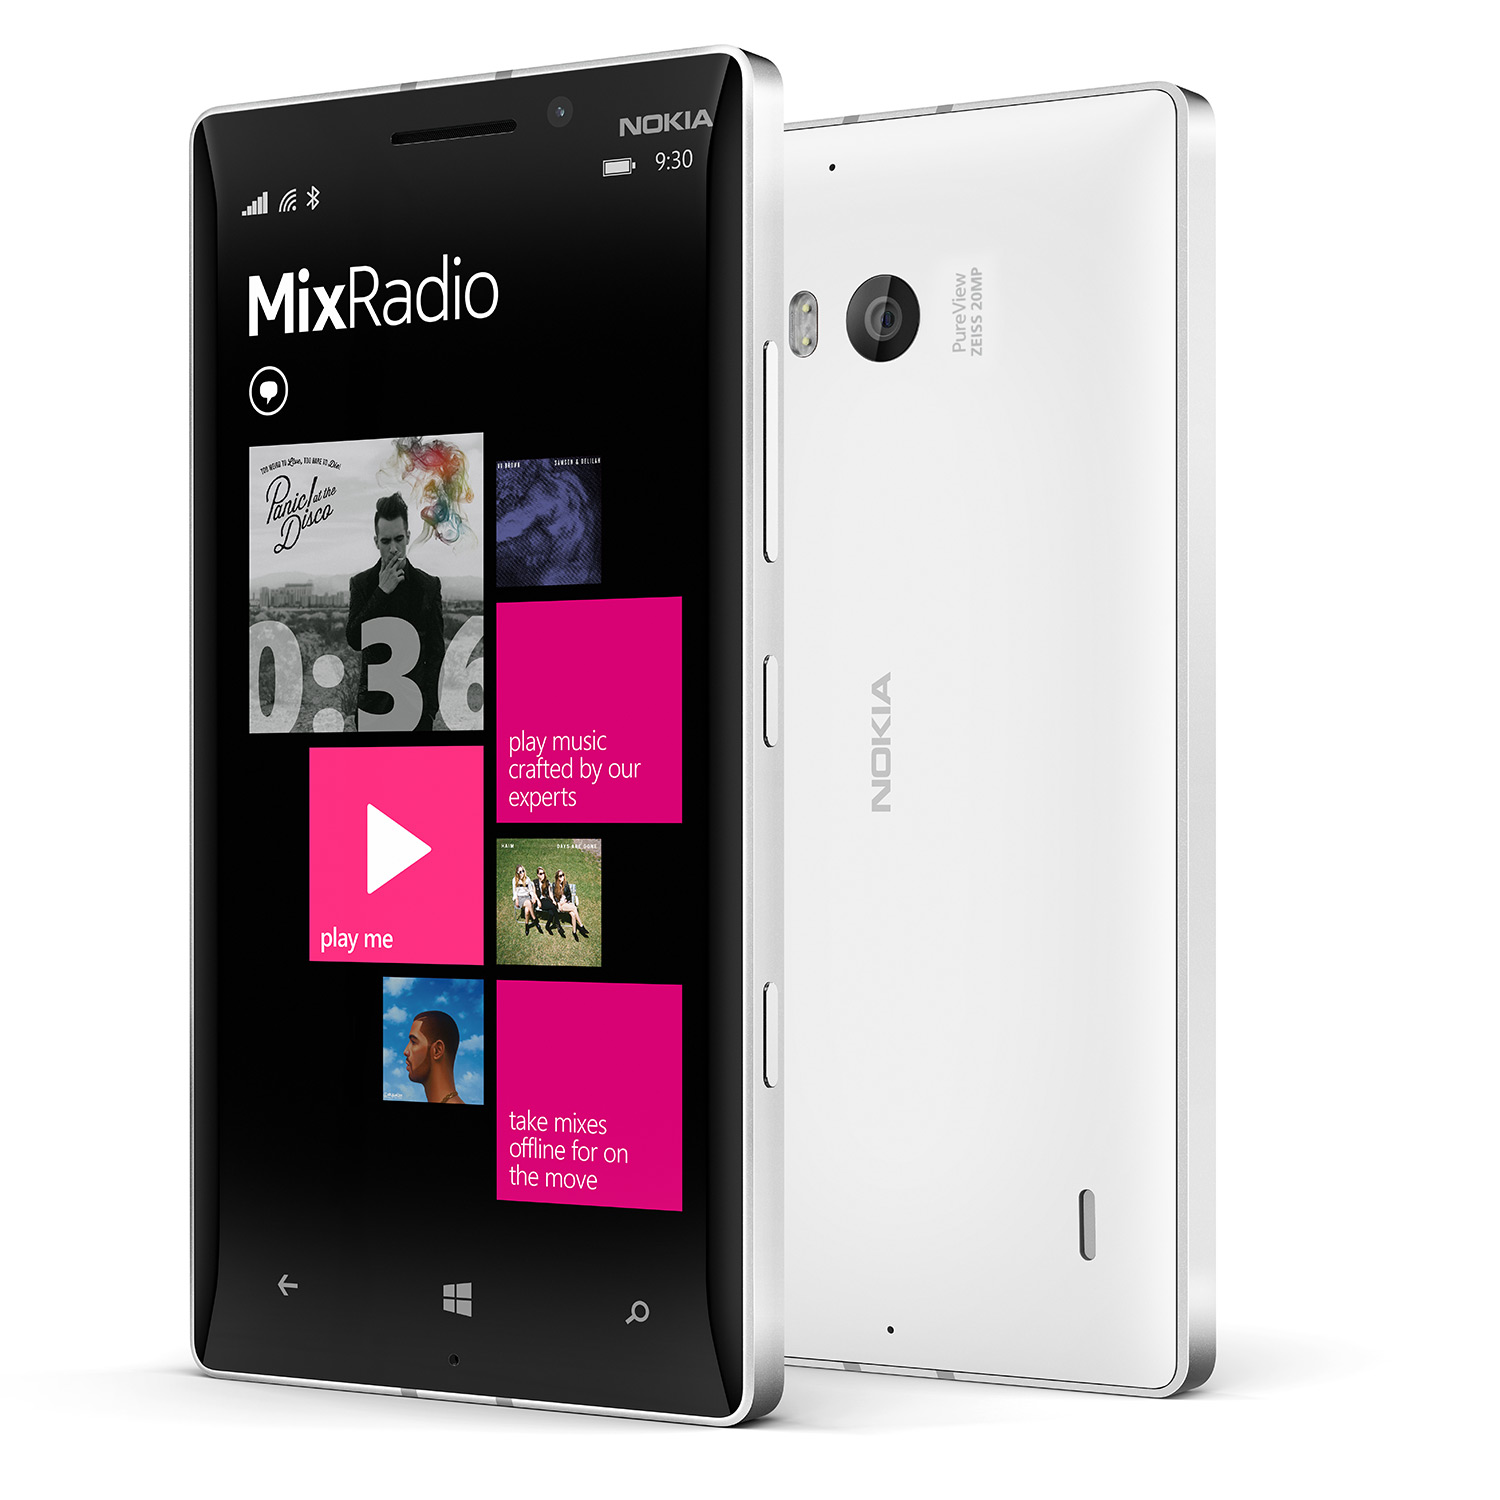 Nokia Lumia 930 - nowy flagowy smartphone z kamer� PureView i Windows Phone